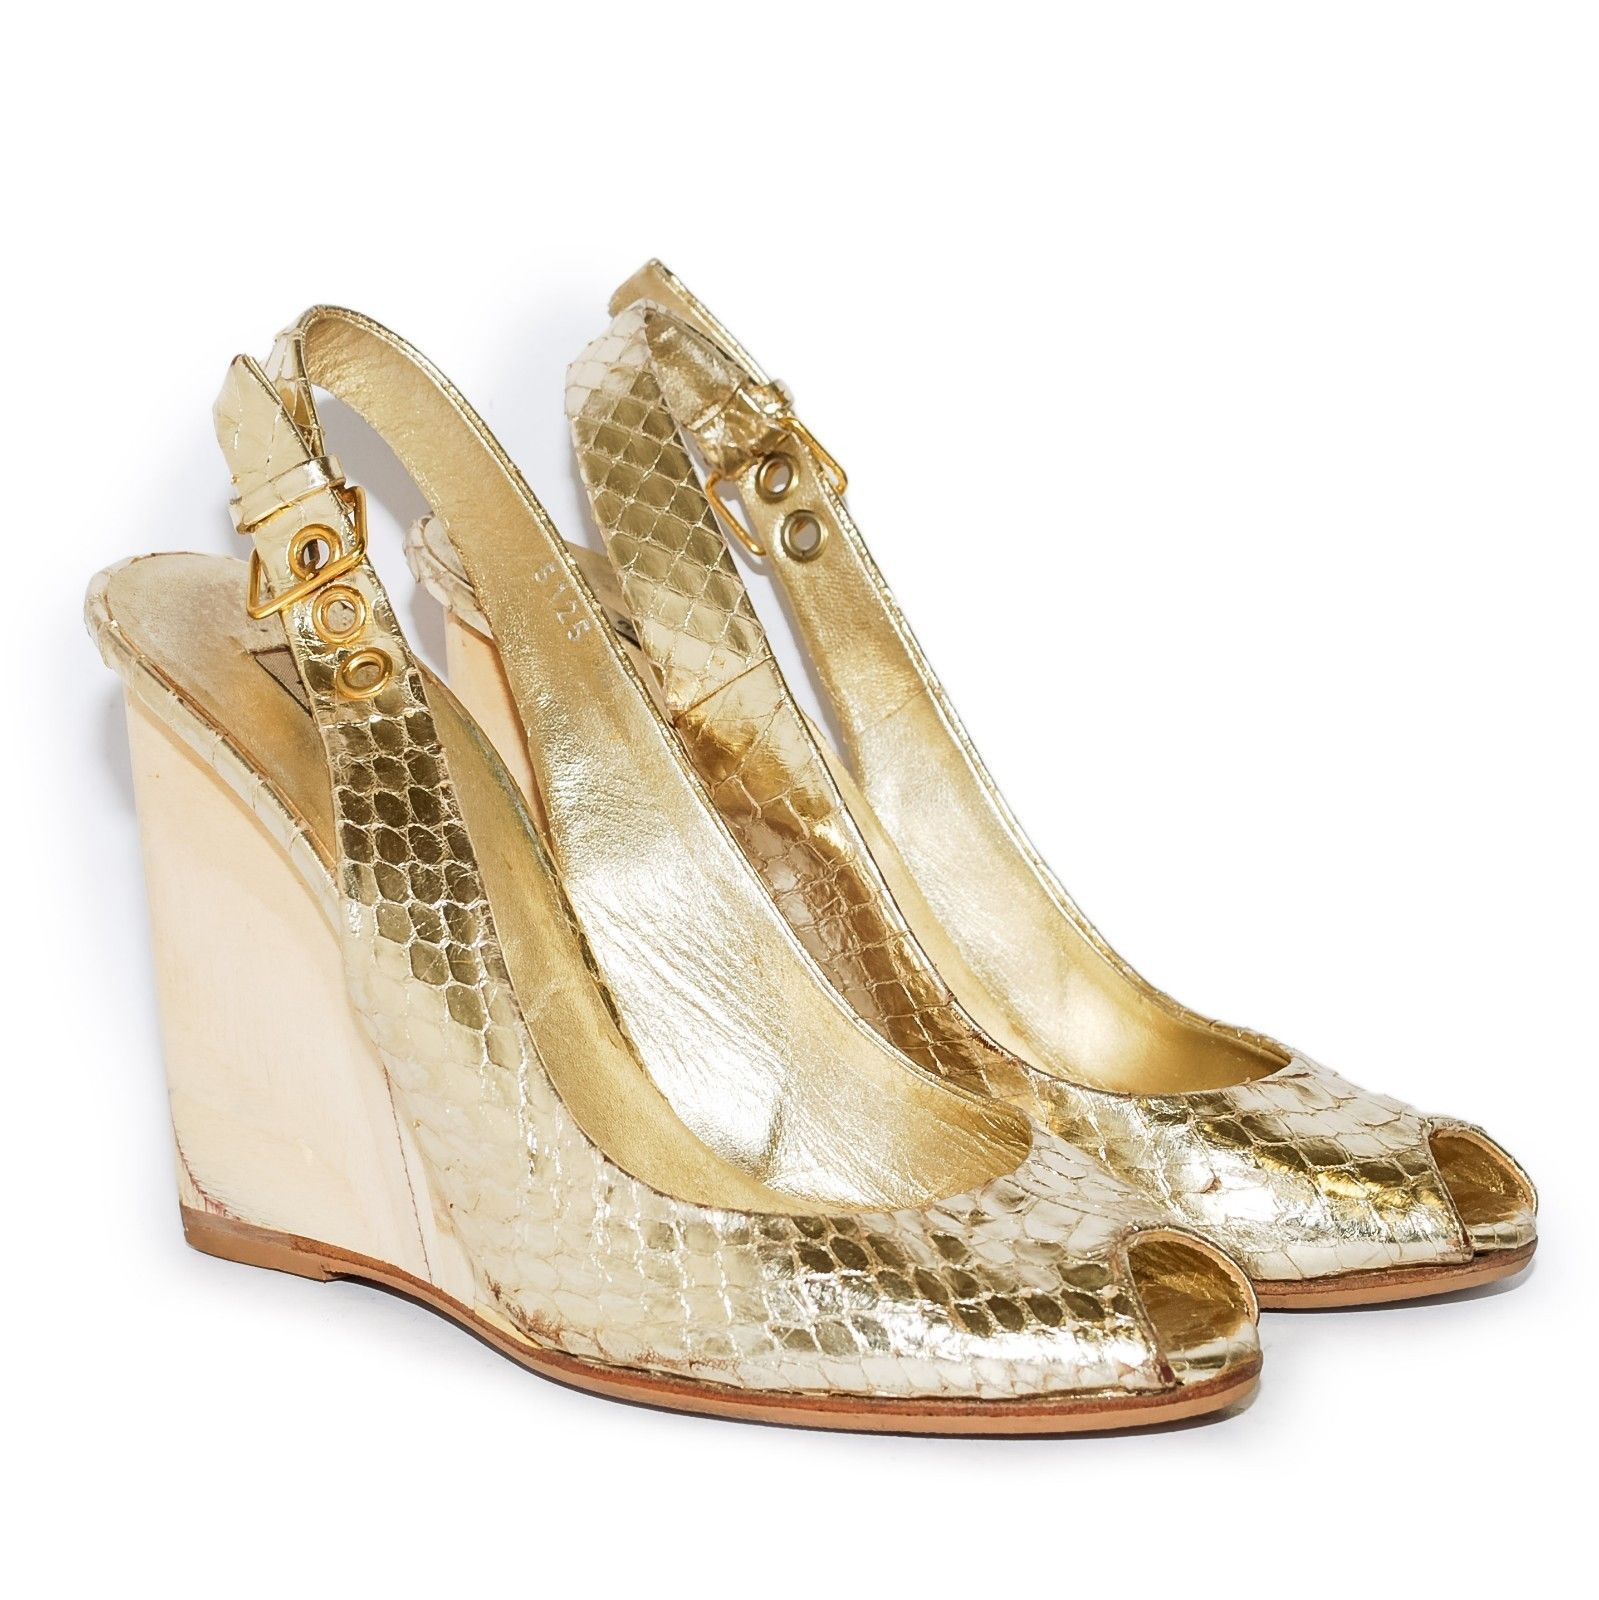 MIU MIU Gold Leather High Wedge Heel Slingbacks Sandals Open Toe Shoes Size US 6